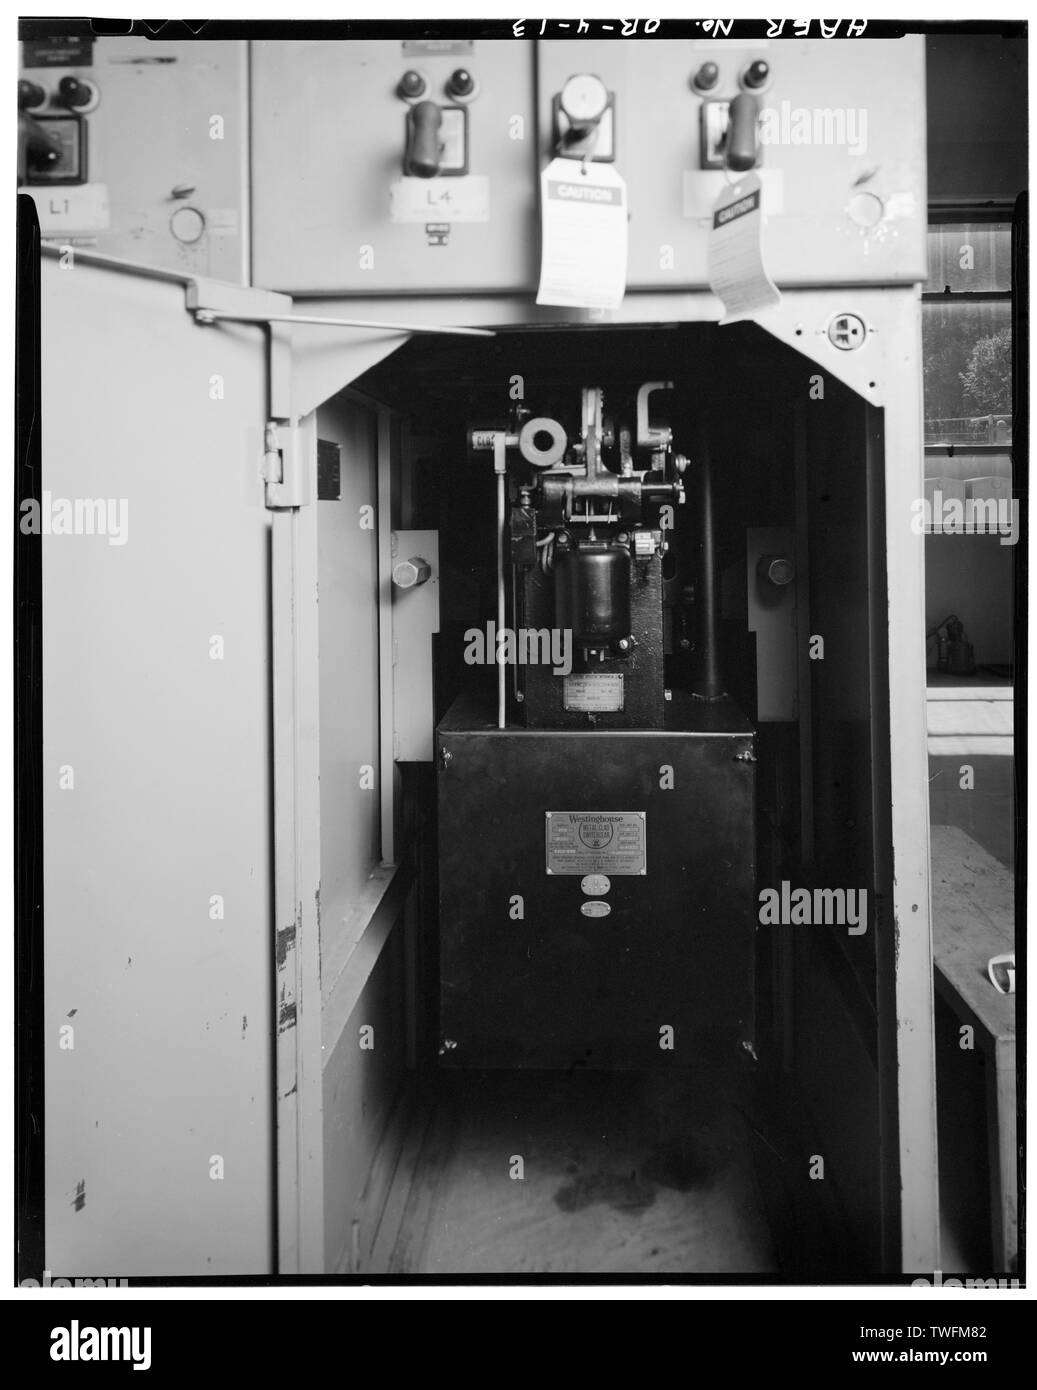 POWER CIRCUIT BREAKER, RECESSED IN CABINET BEHIND HINGED METAL DOOR (SHOWN OPEN), WEST SIDE, MAIN FLOOR - Bonneville Power Administration South Bank Substation, I-84, South of Bonneville Dam Powerhouse, Bonneville, Multnomah County, OR - Stock Image